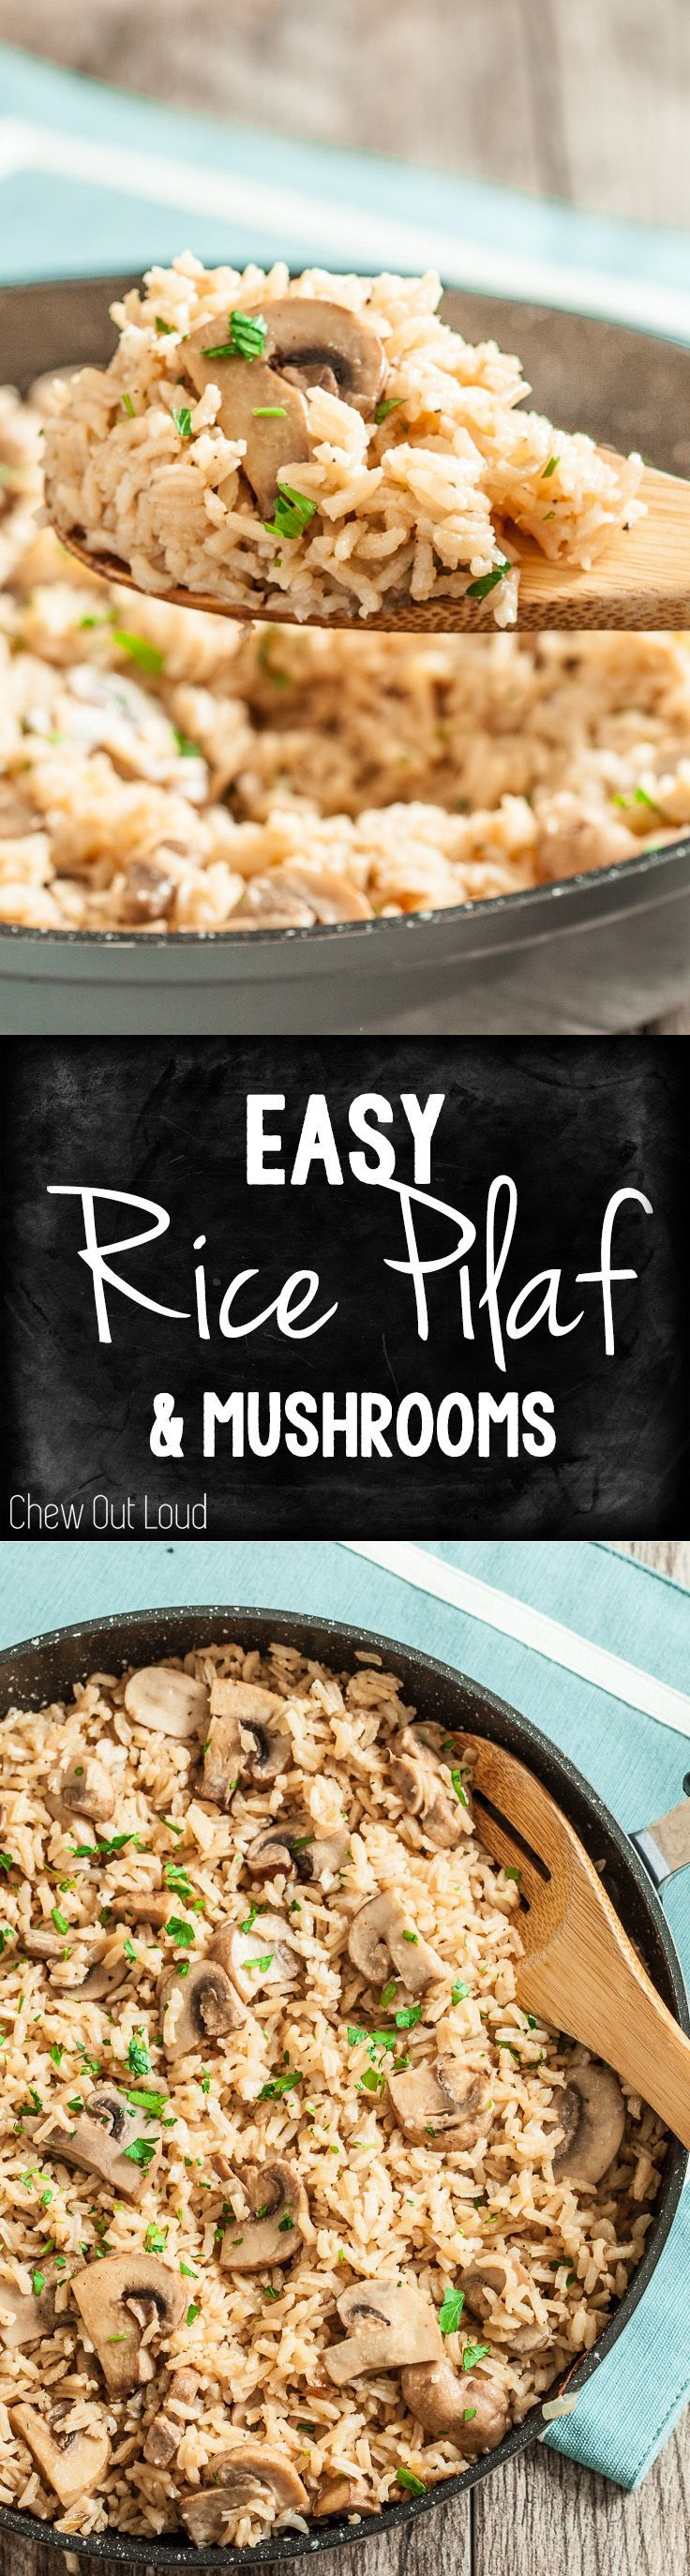 Easy, Delicious Rice Pilaf with Mushrooms. Fluffy, tender, and ultra flavorful. Irresistible dish any night of the week.